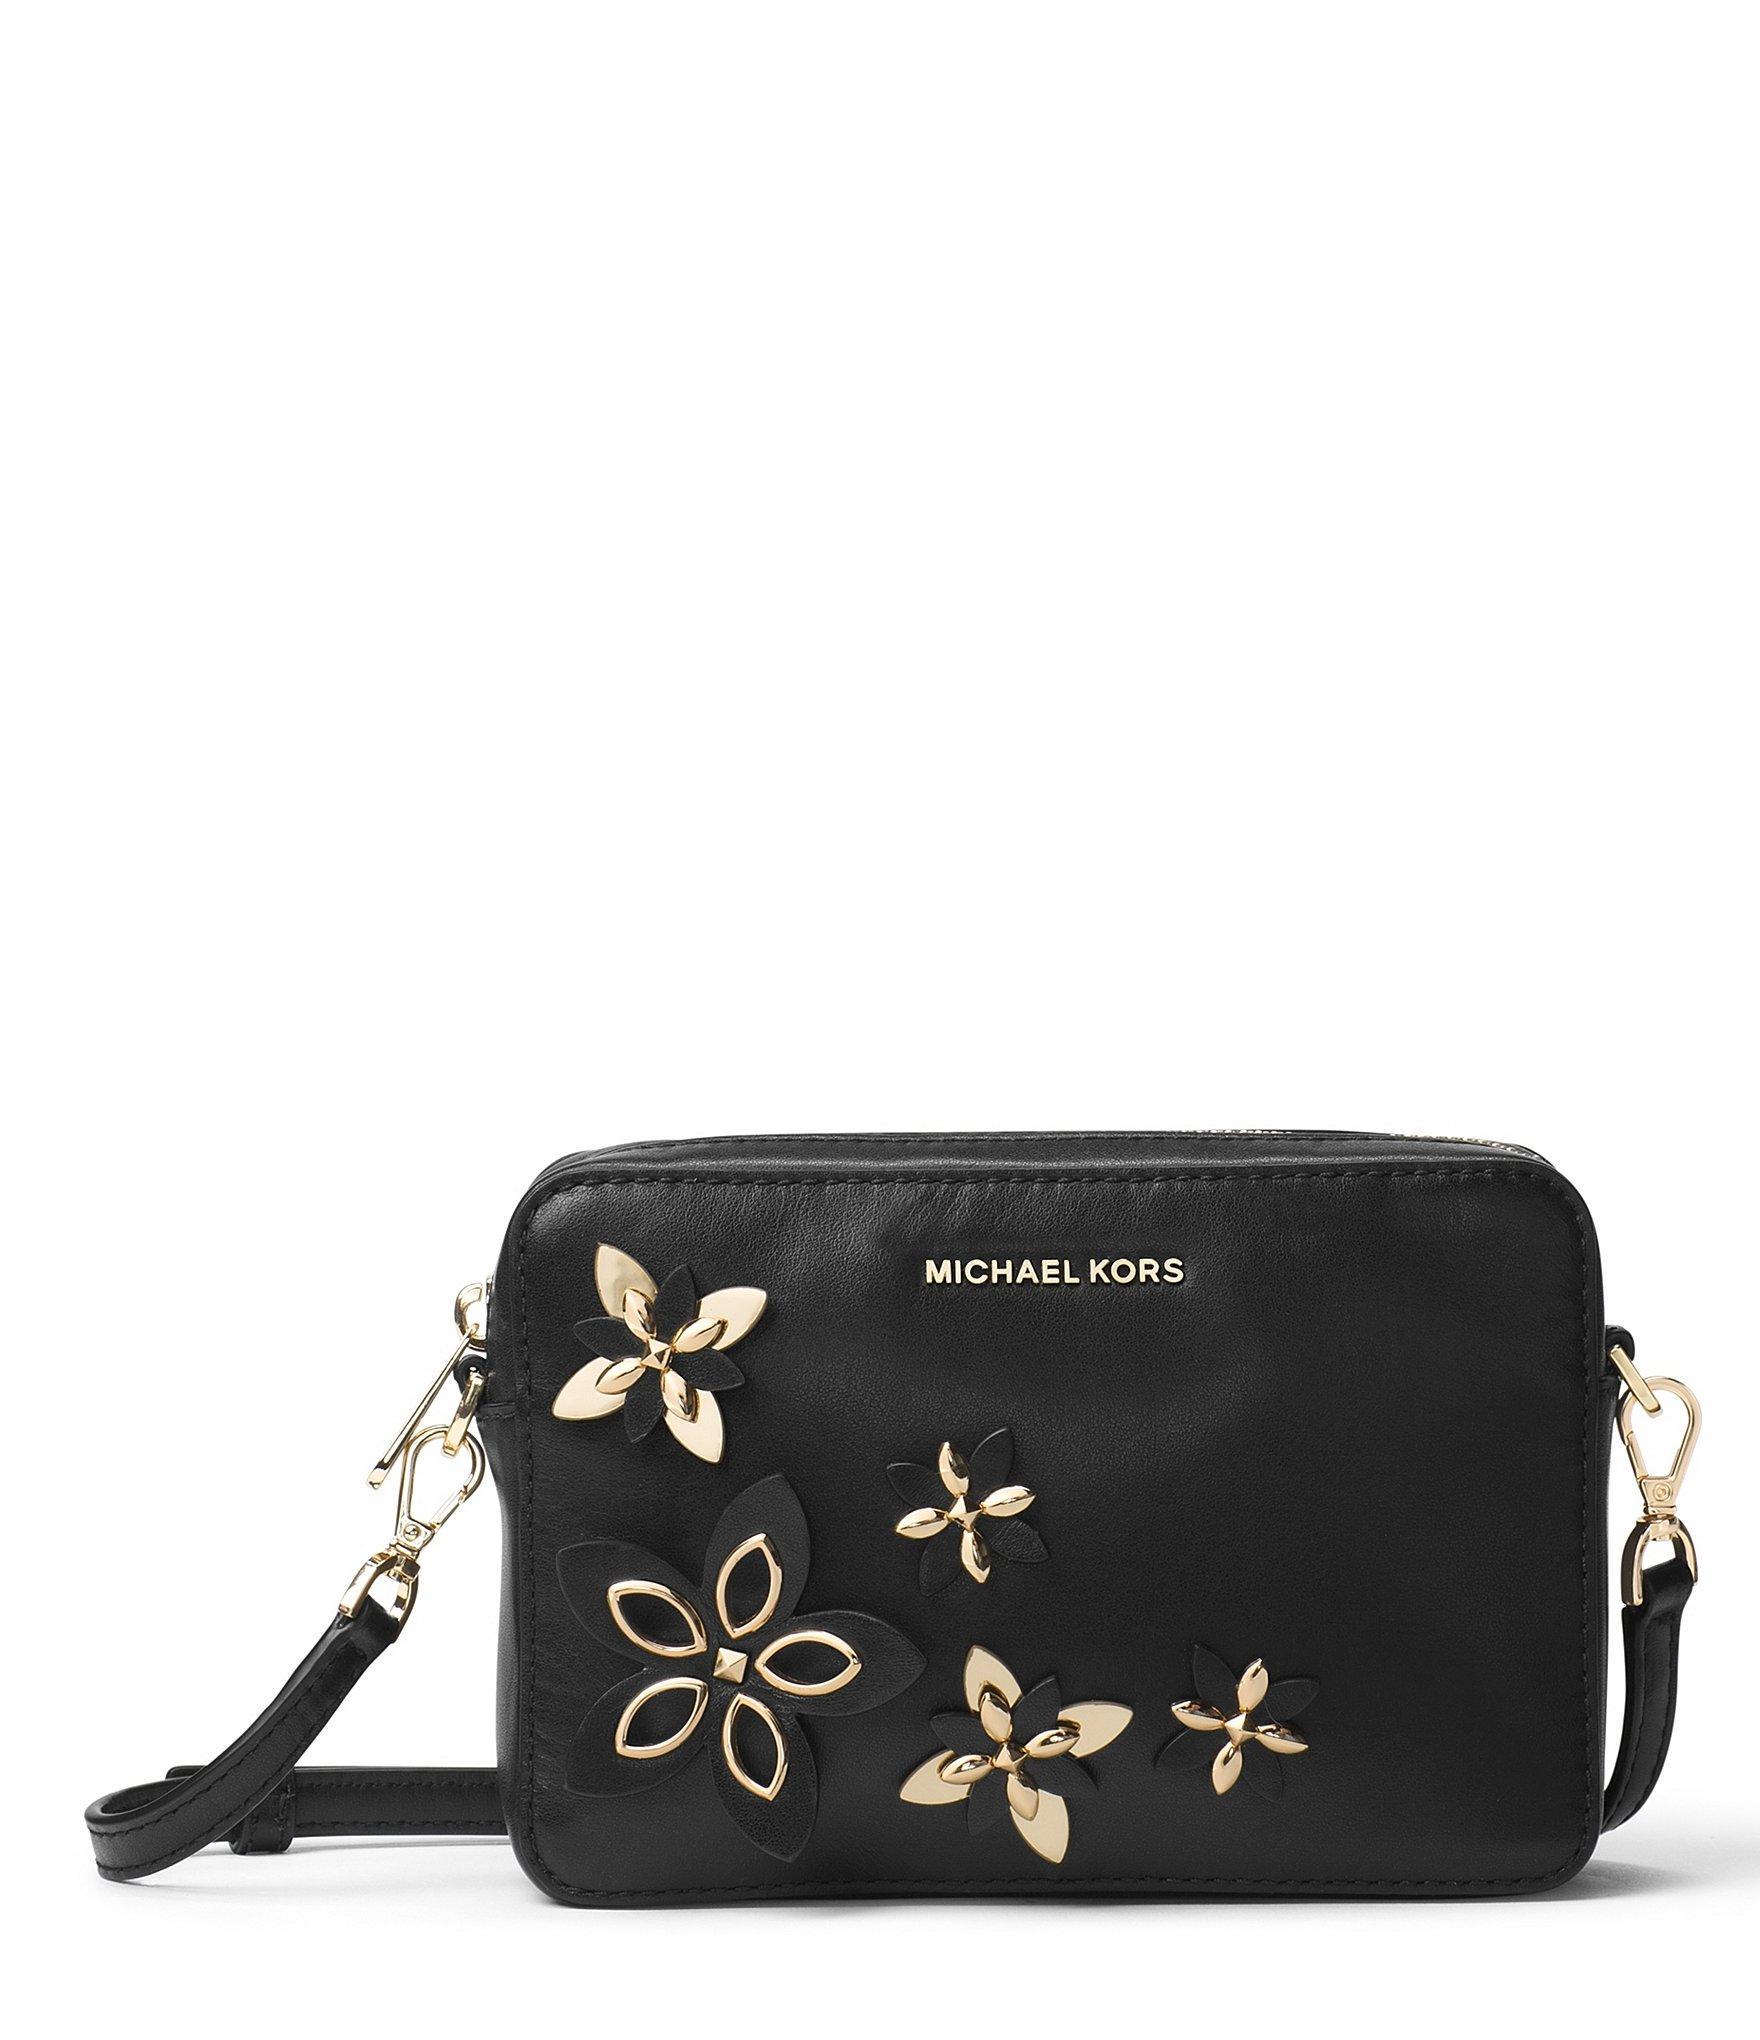 Michael Michael Kors Flower-appliquu00e9d Camera Cross-body Bag In Black | Lyst